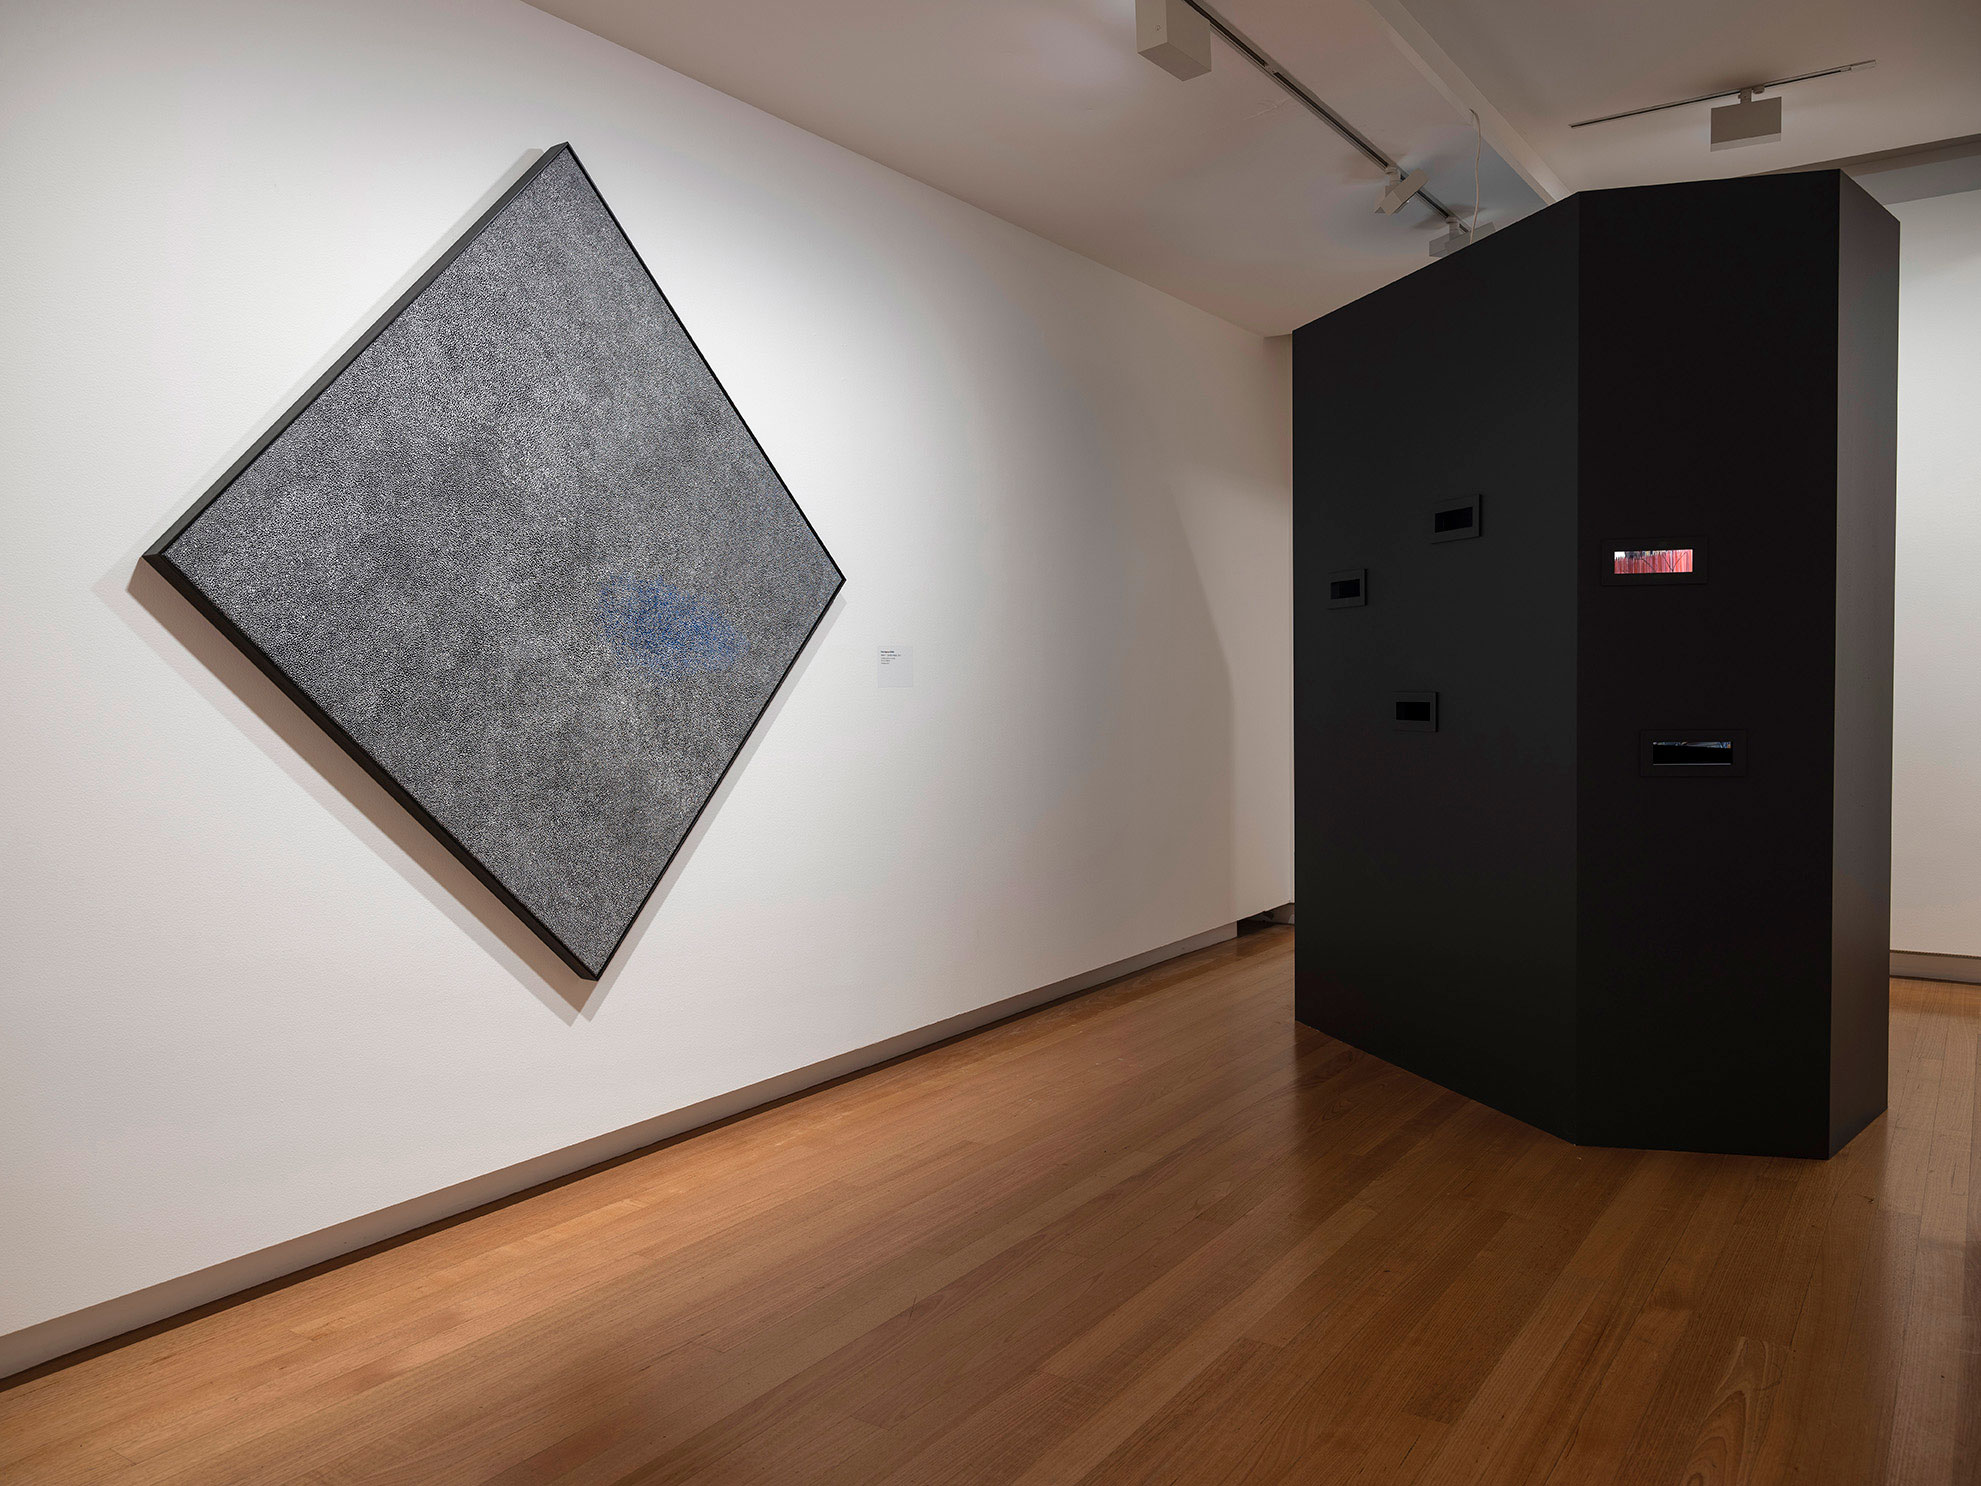 Installation view of 'Vis-ability: Artworks from the QUT Art Collection' (11 May - 4 August 2019), QUT Art Museum. Photo by Carl Warner.